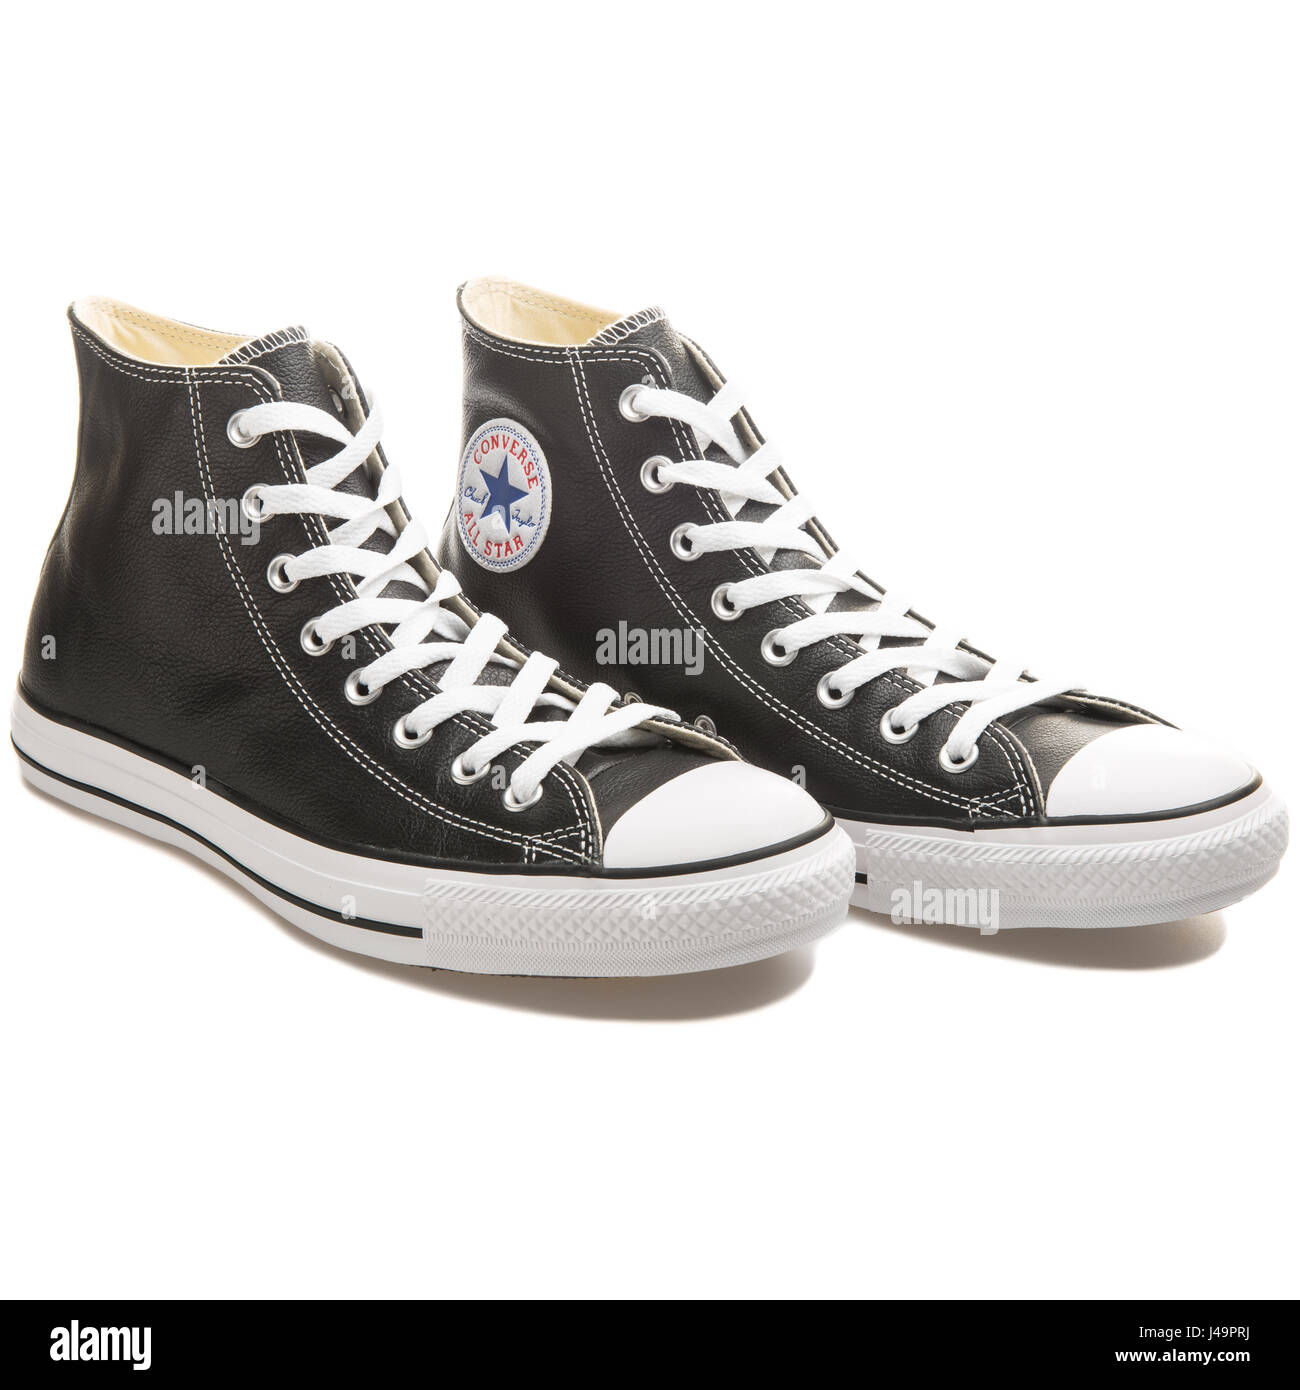 9043d1e16fee97 Converse Chuck Taylor All Star Hi Black Leather Shoe - 132170C Stock ...